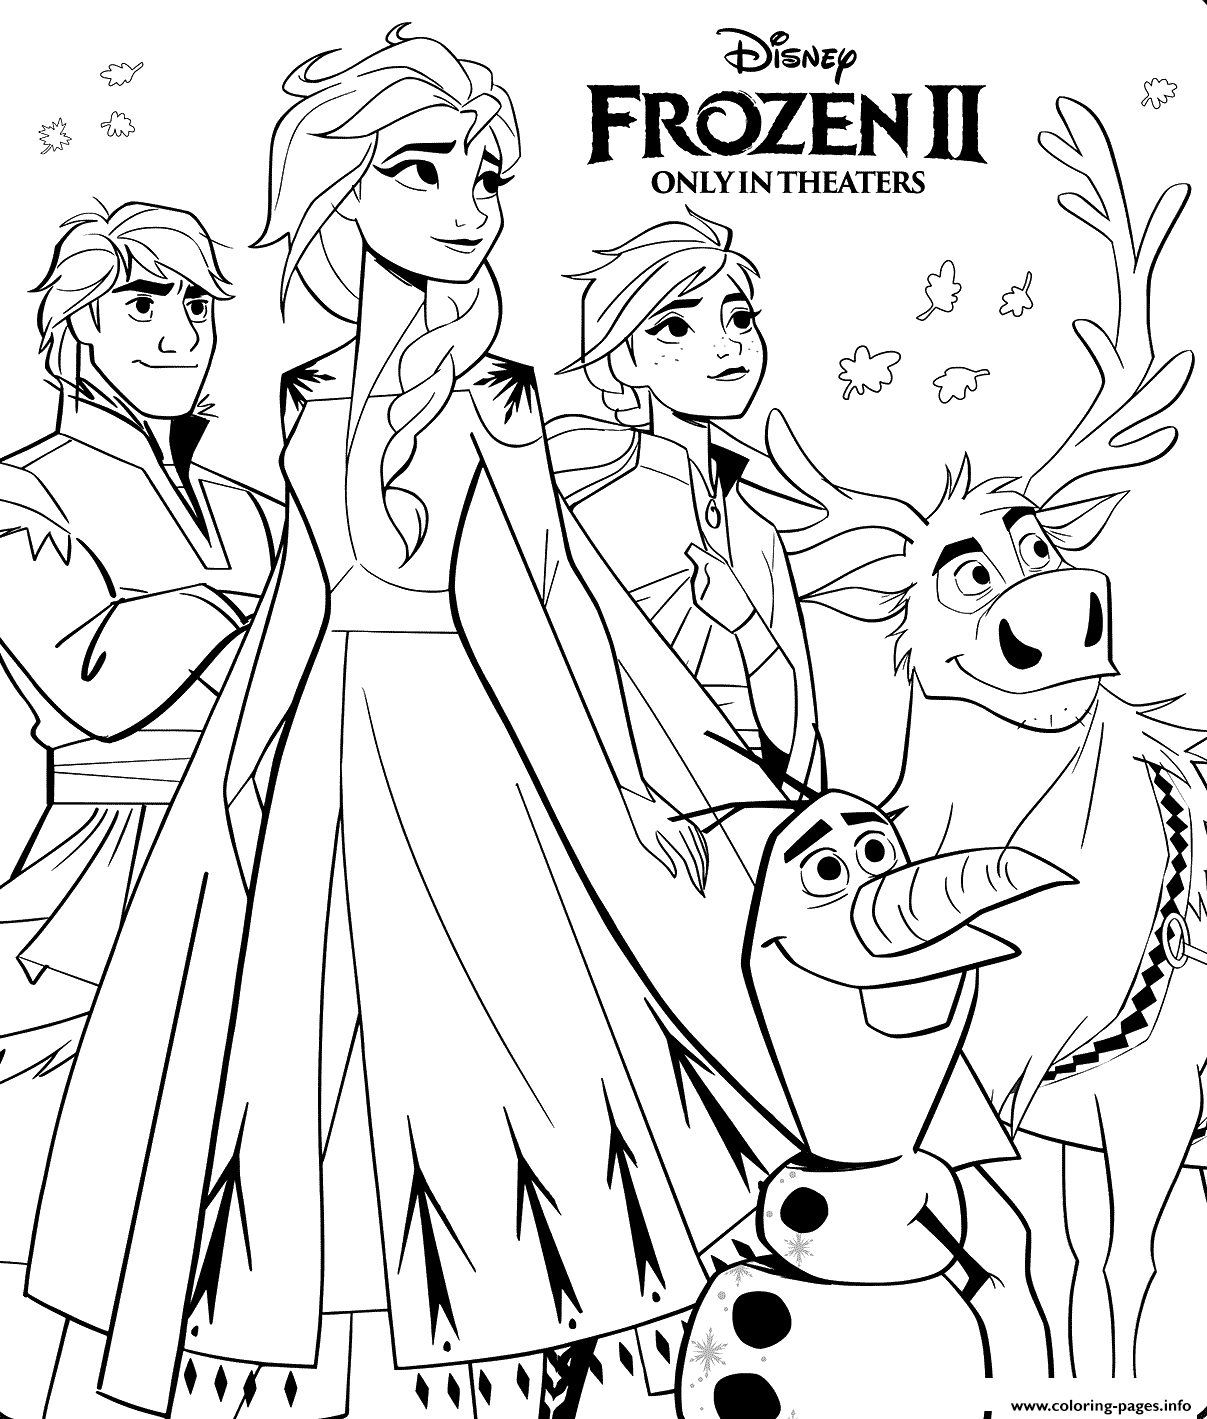 free frozen coloring pages frozen 2 coloring pages for adults sheapeterson free coloring frozen pages